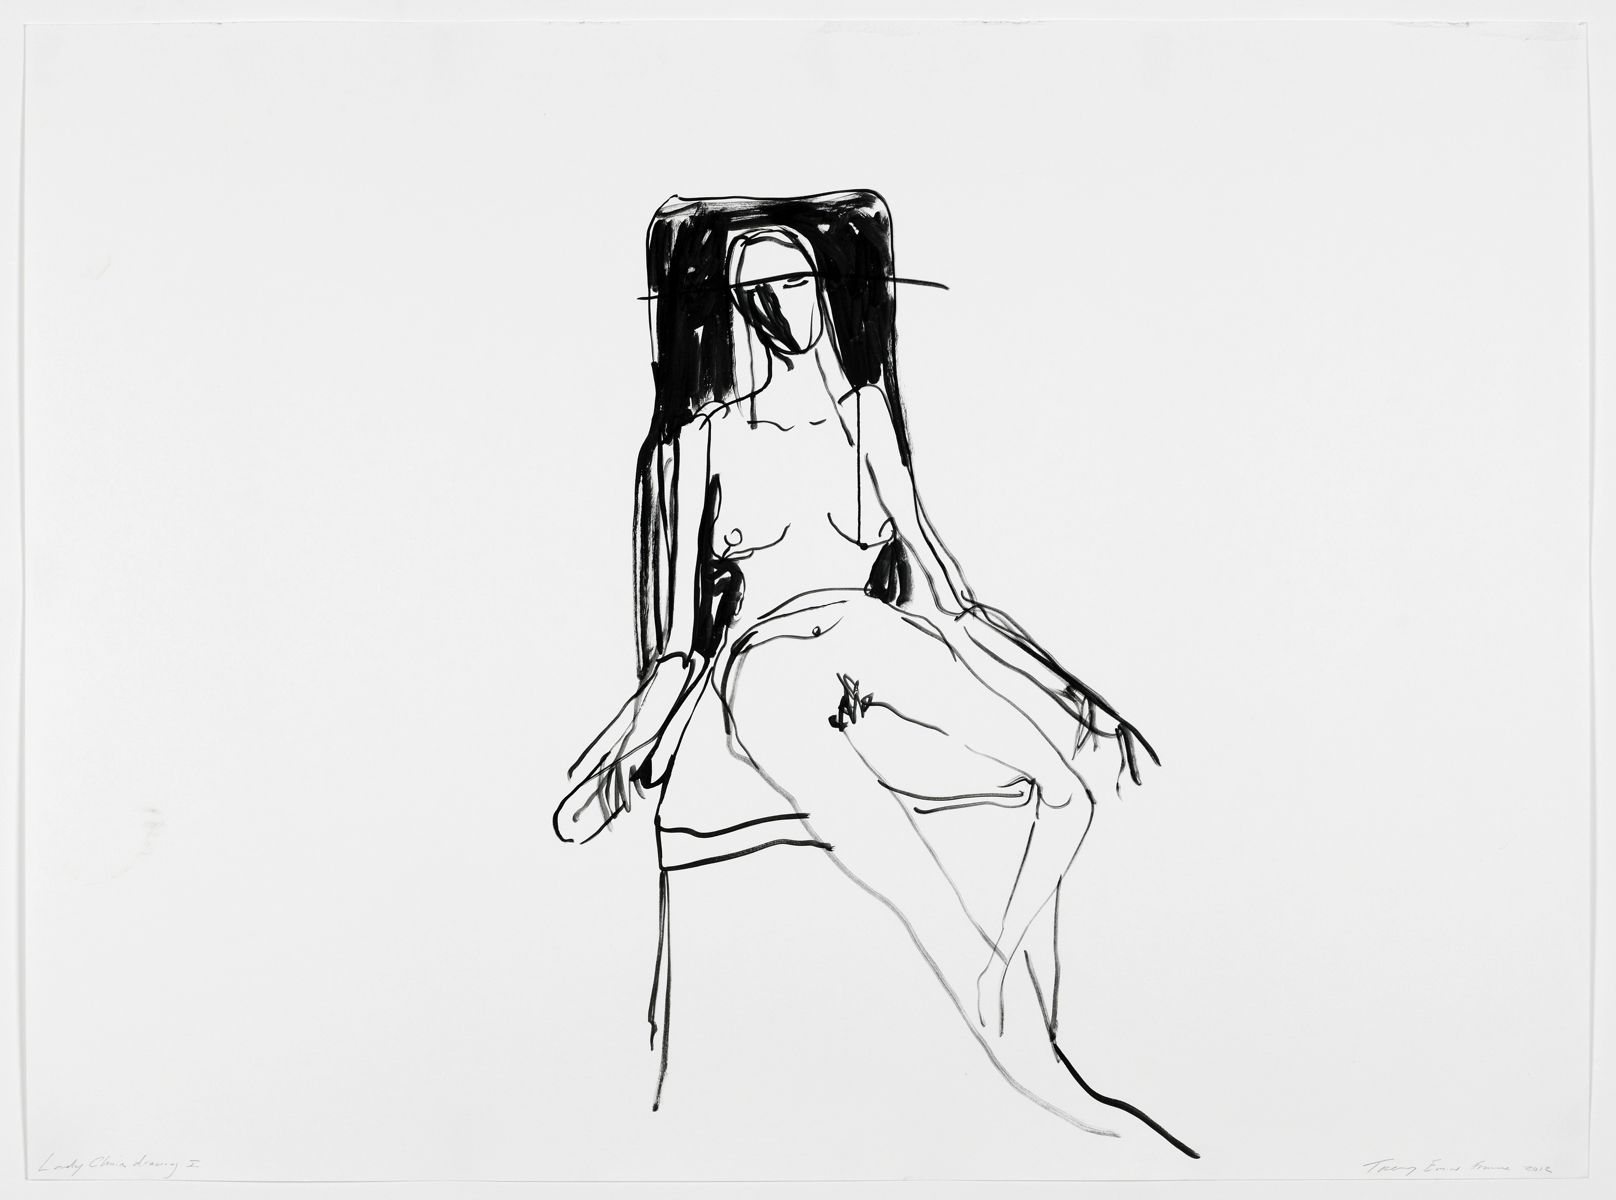 "Tracey EMIN (b. 1963)Lonely Chair drawing Igouache on paper101.5 x 137 cm (paper)110.5 x 150.5 x 5.1 cm (framed)EXHIBITEDTracey Emin - Egon Schiele, ""Where I Want to Go{quote}, Leopold Museum, Vienna, Austria from April 23 – September 19, 2015.LITERATUREKarol Winiarczyk, Tracy Emin 